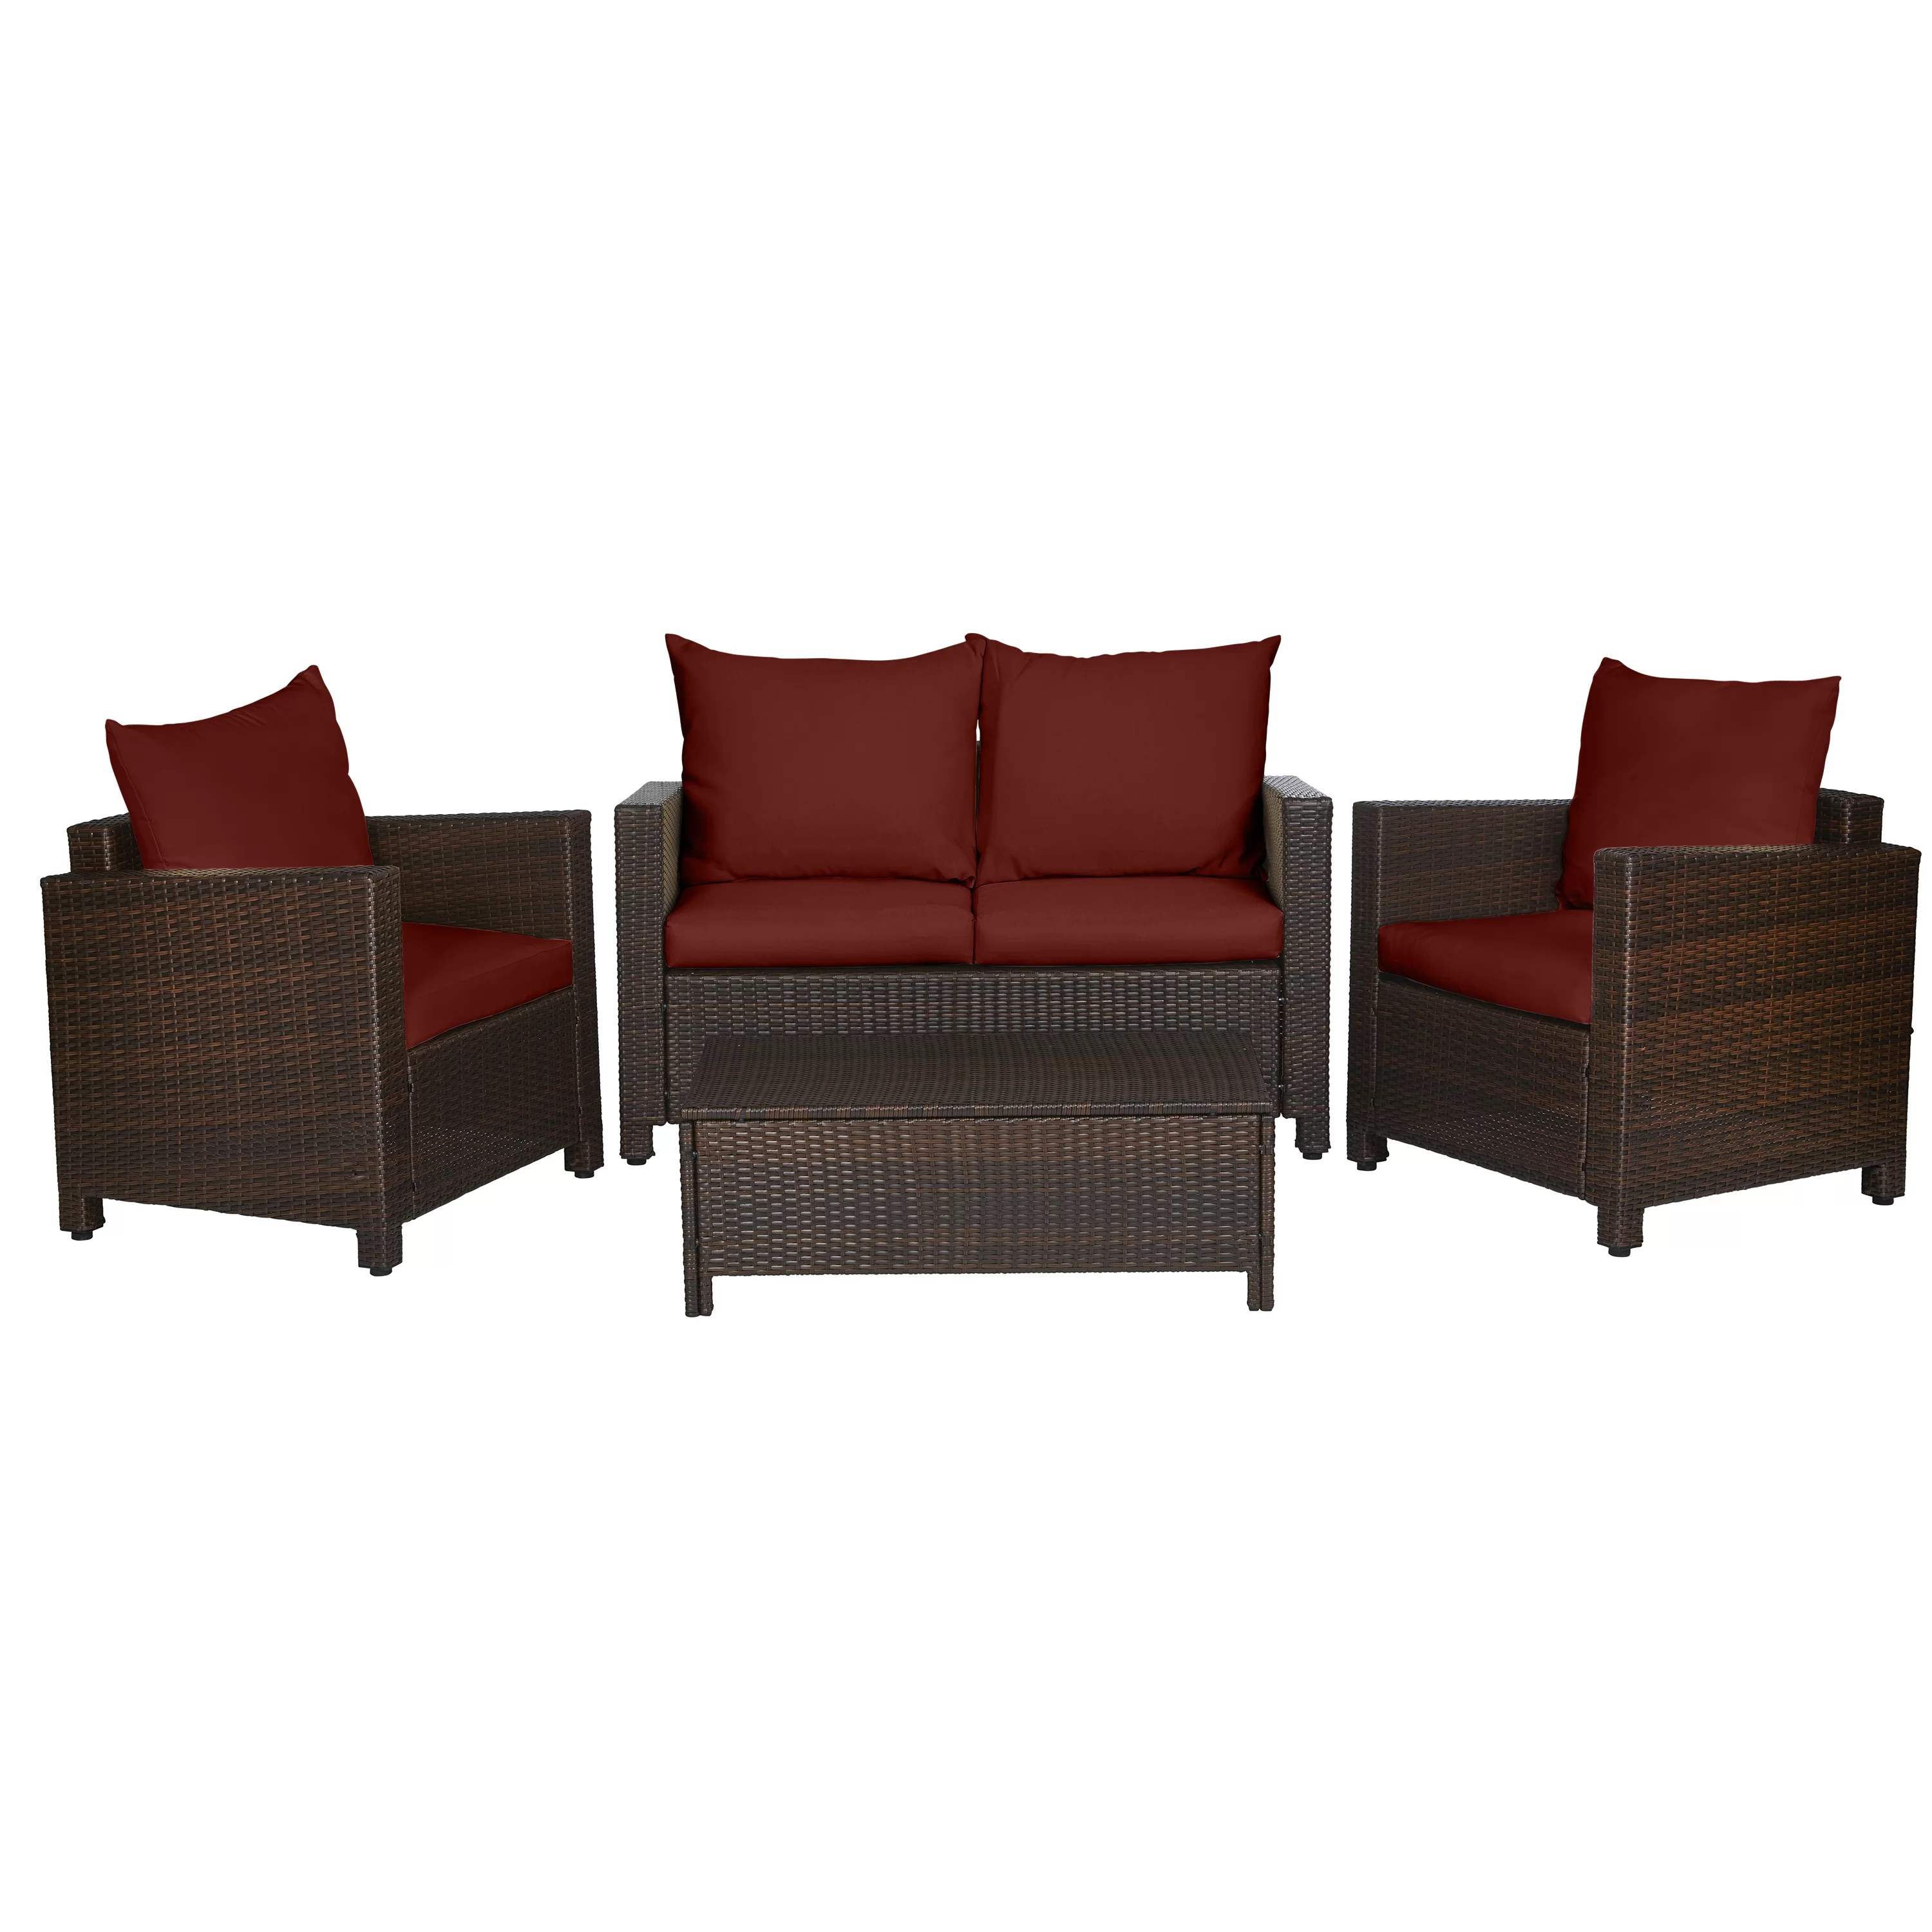 Rattan Sofa Belva 4 Piece Rattan Sofa Set With Cushions